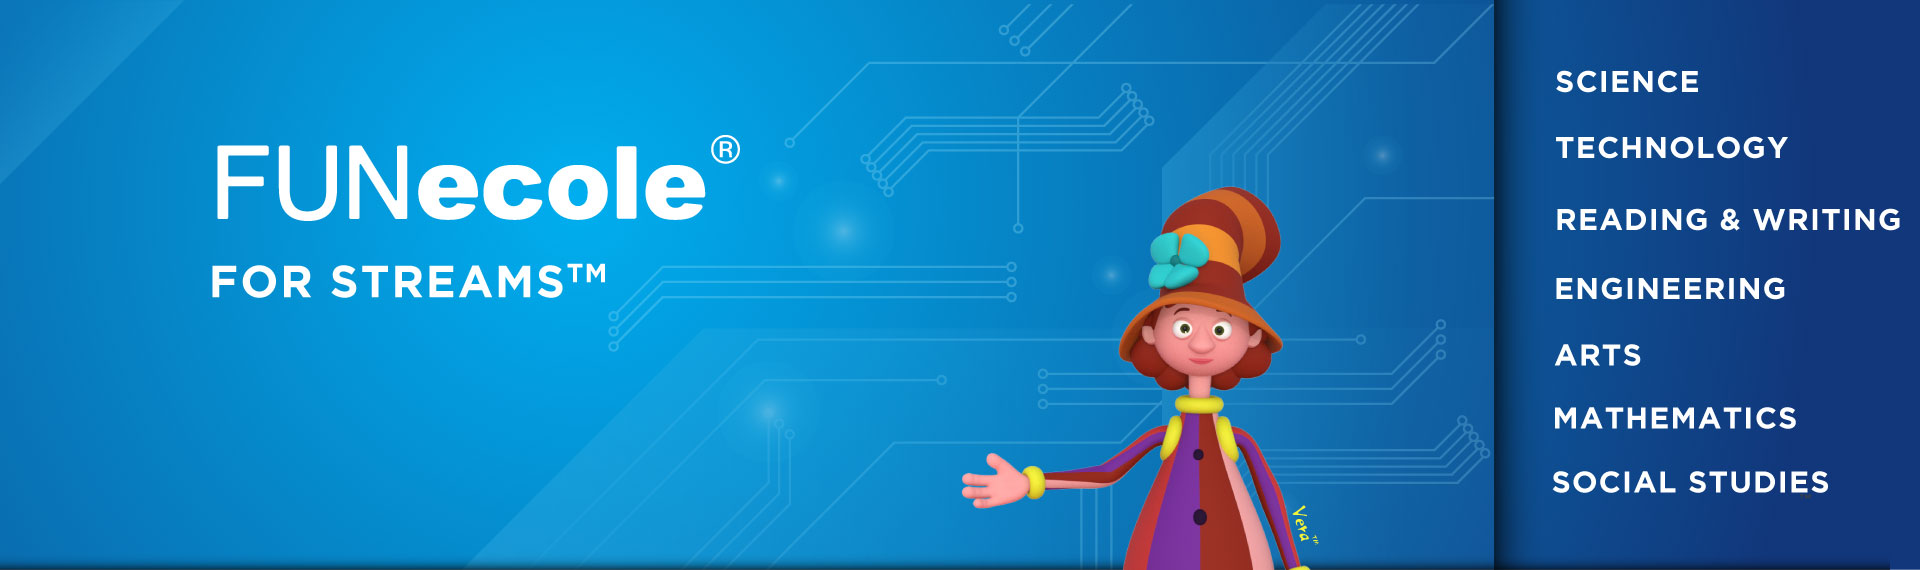 funecole for steam education